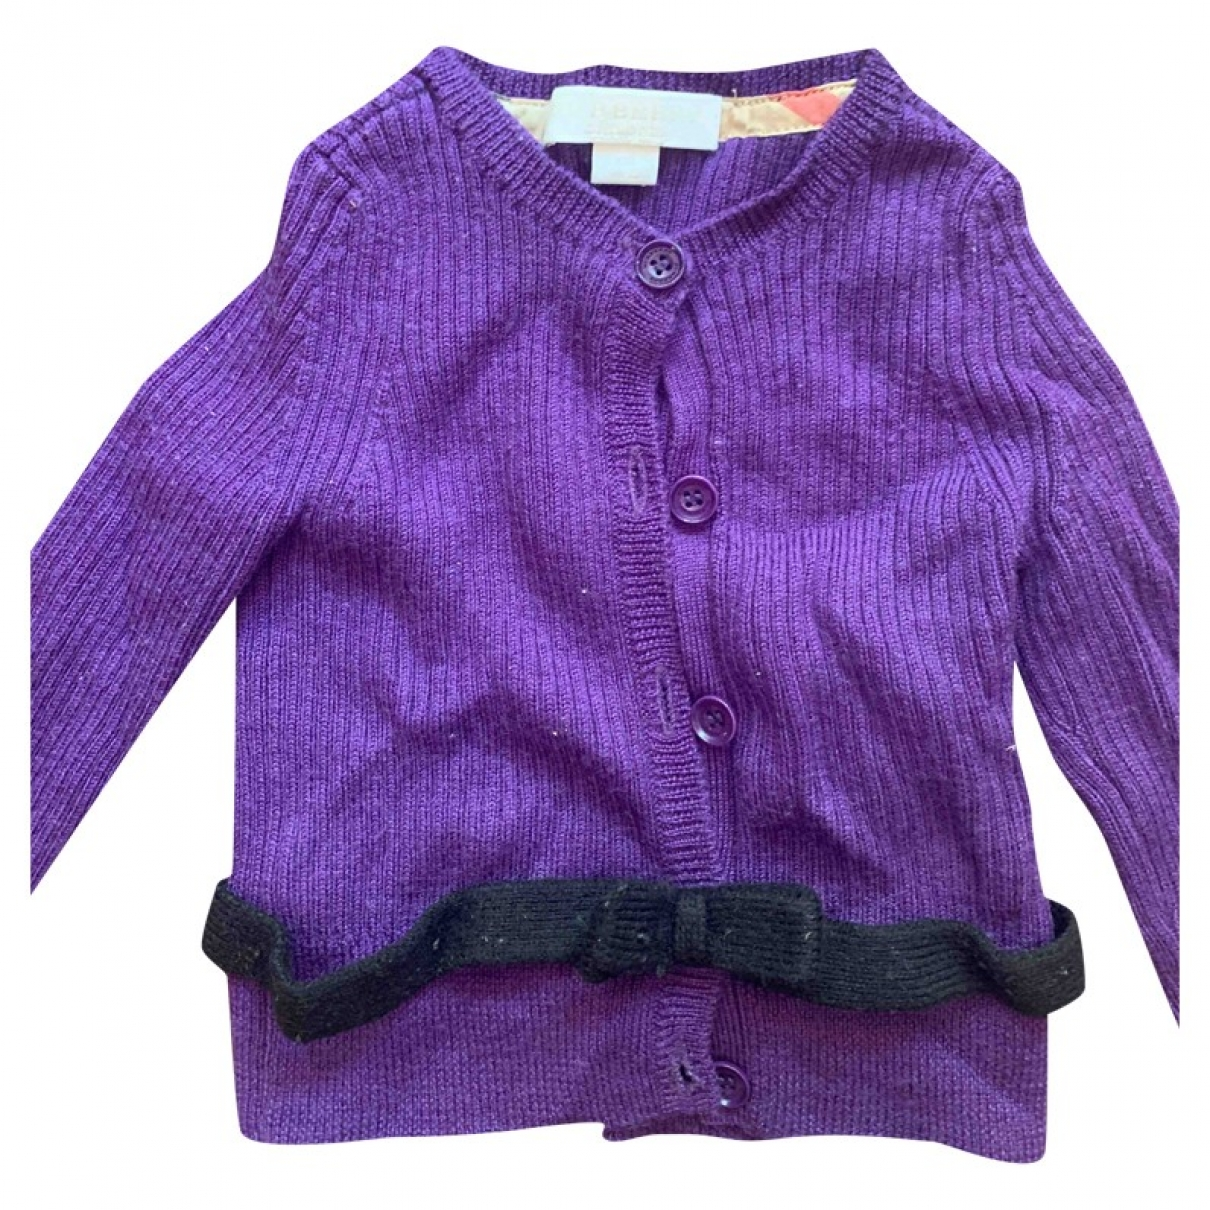 Burberry \N Purple Wool Knitwear for Kids 12 months - up to 74cm FR